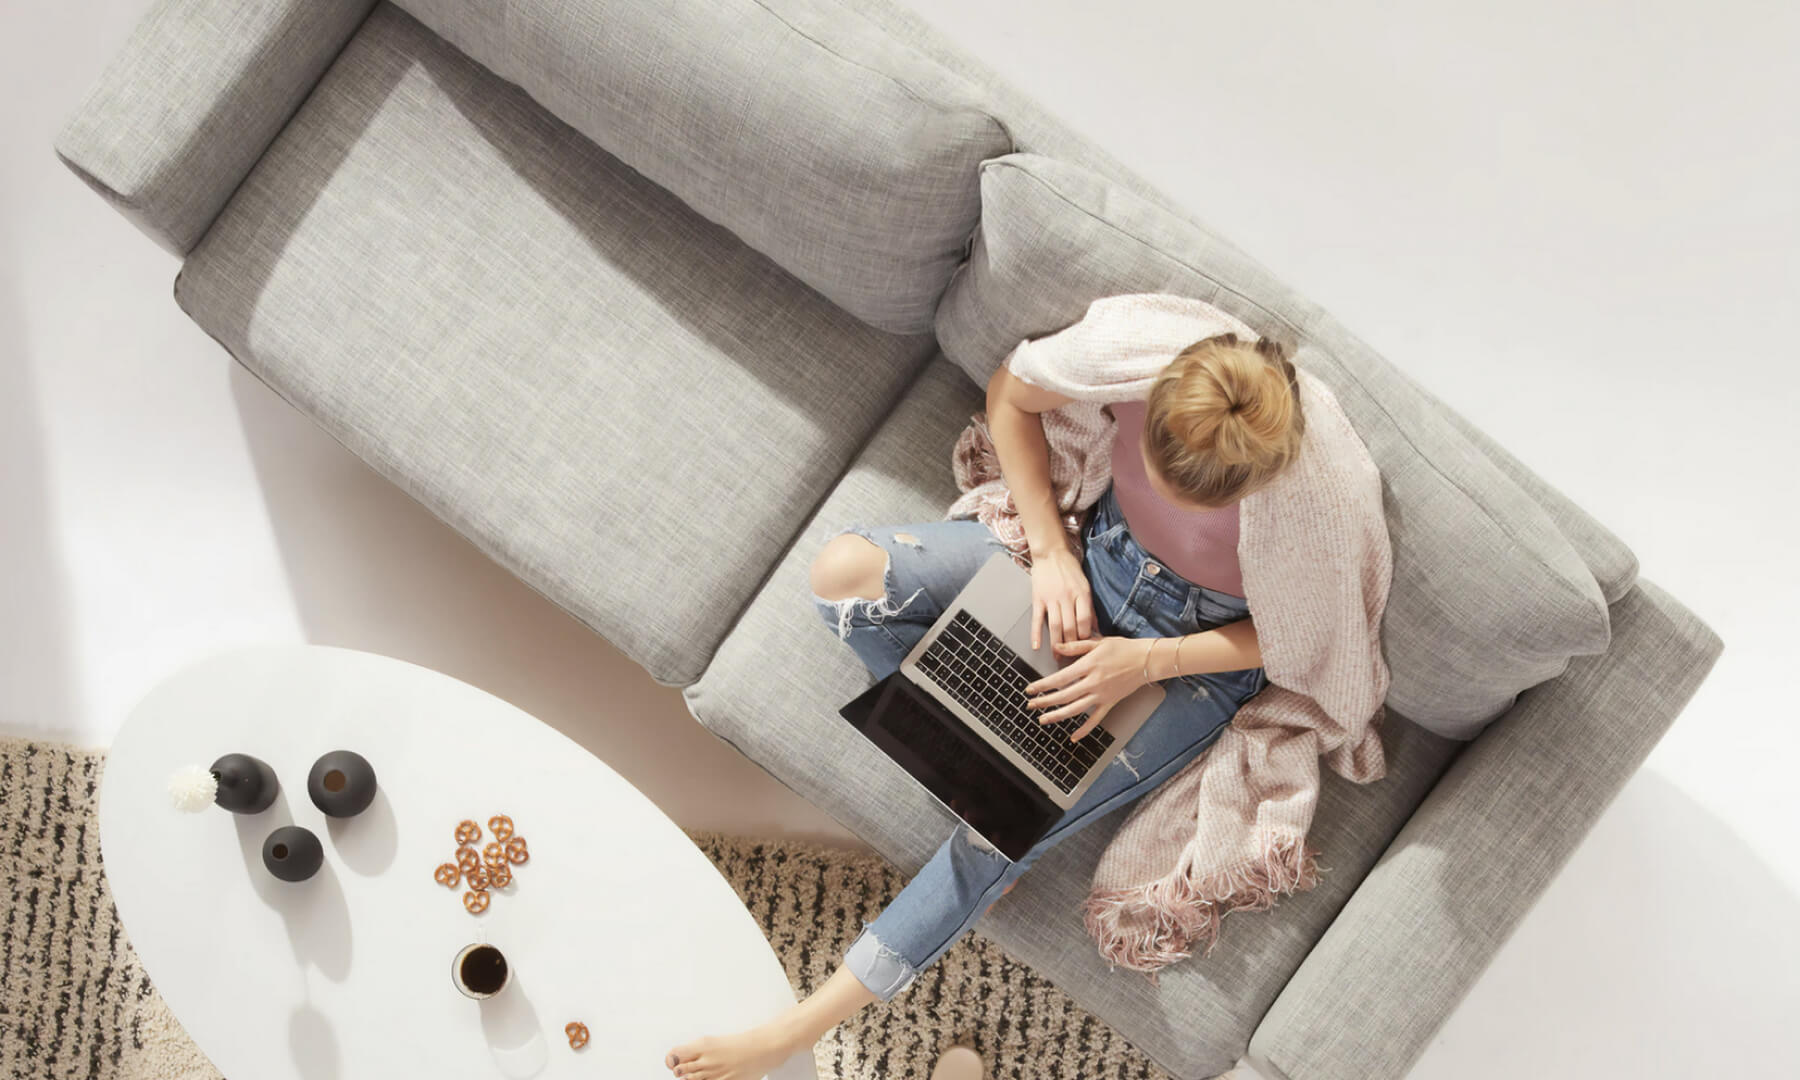 Birds eye view of a woman sitting on her couch, working on her laptop.